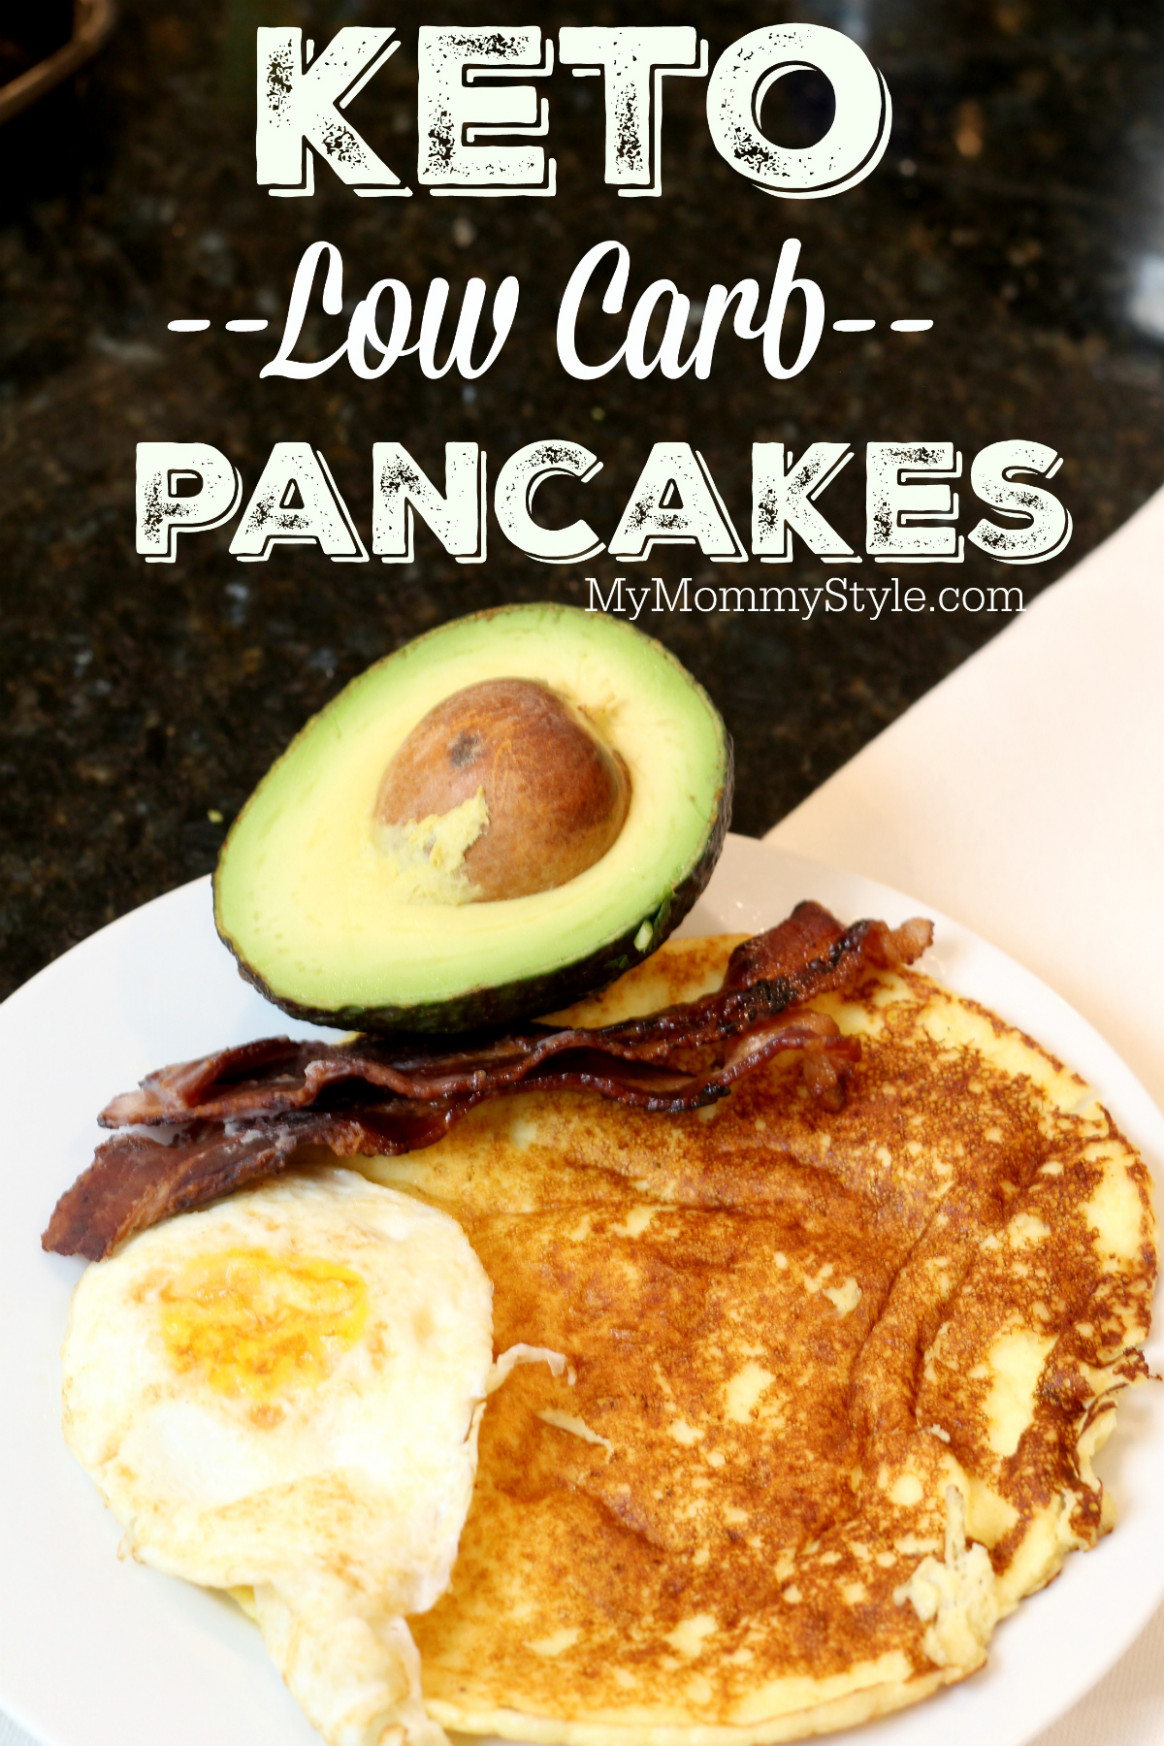 Keto, Low carb pancakes to help you reach your low carb goals - healthy recipes yogurt